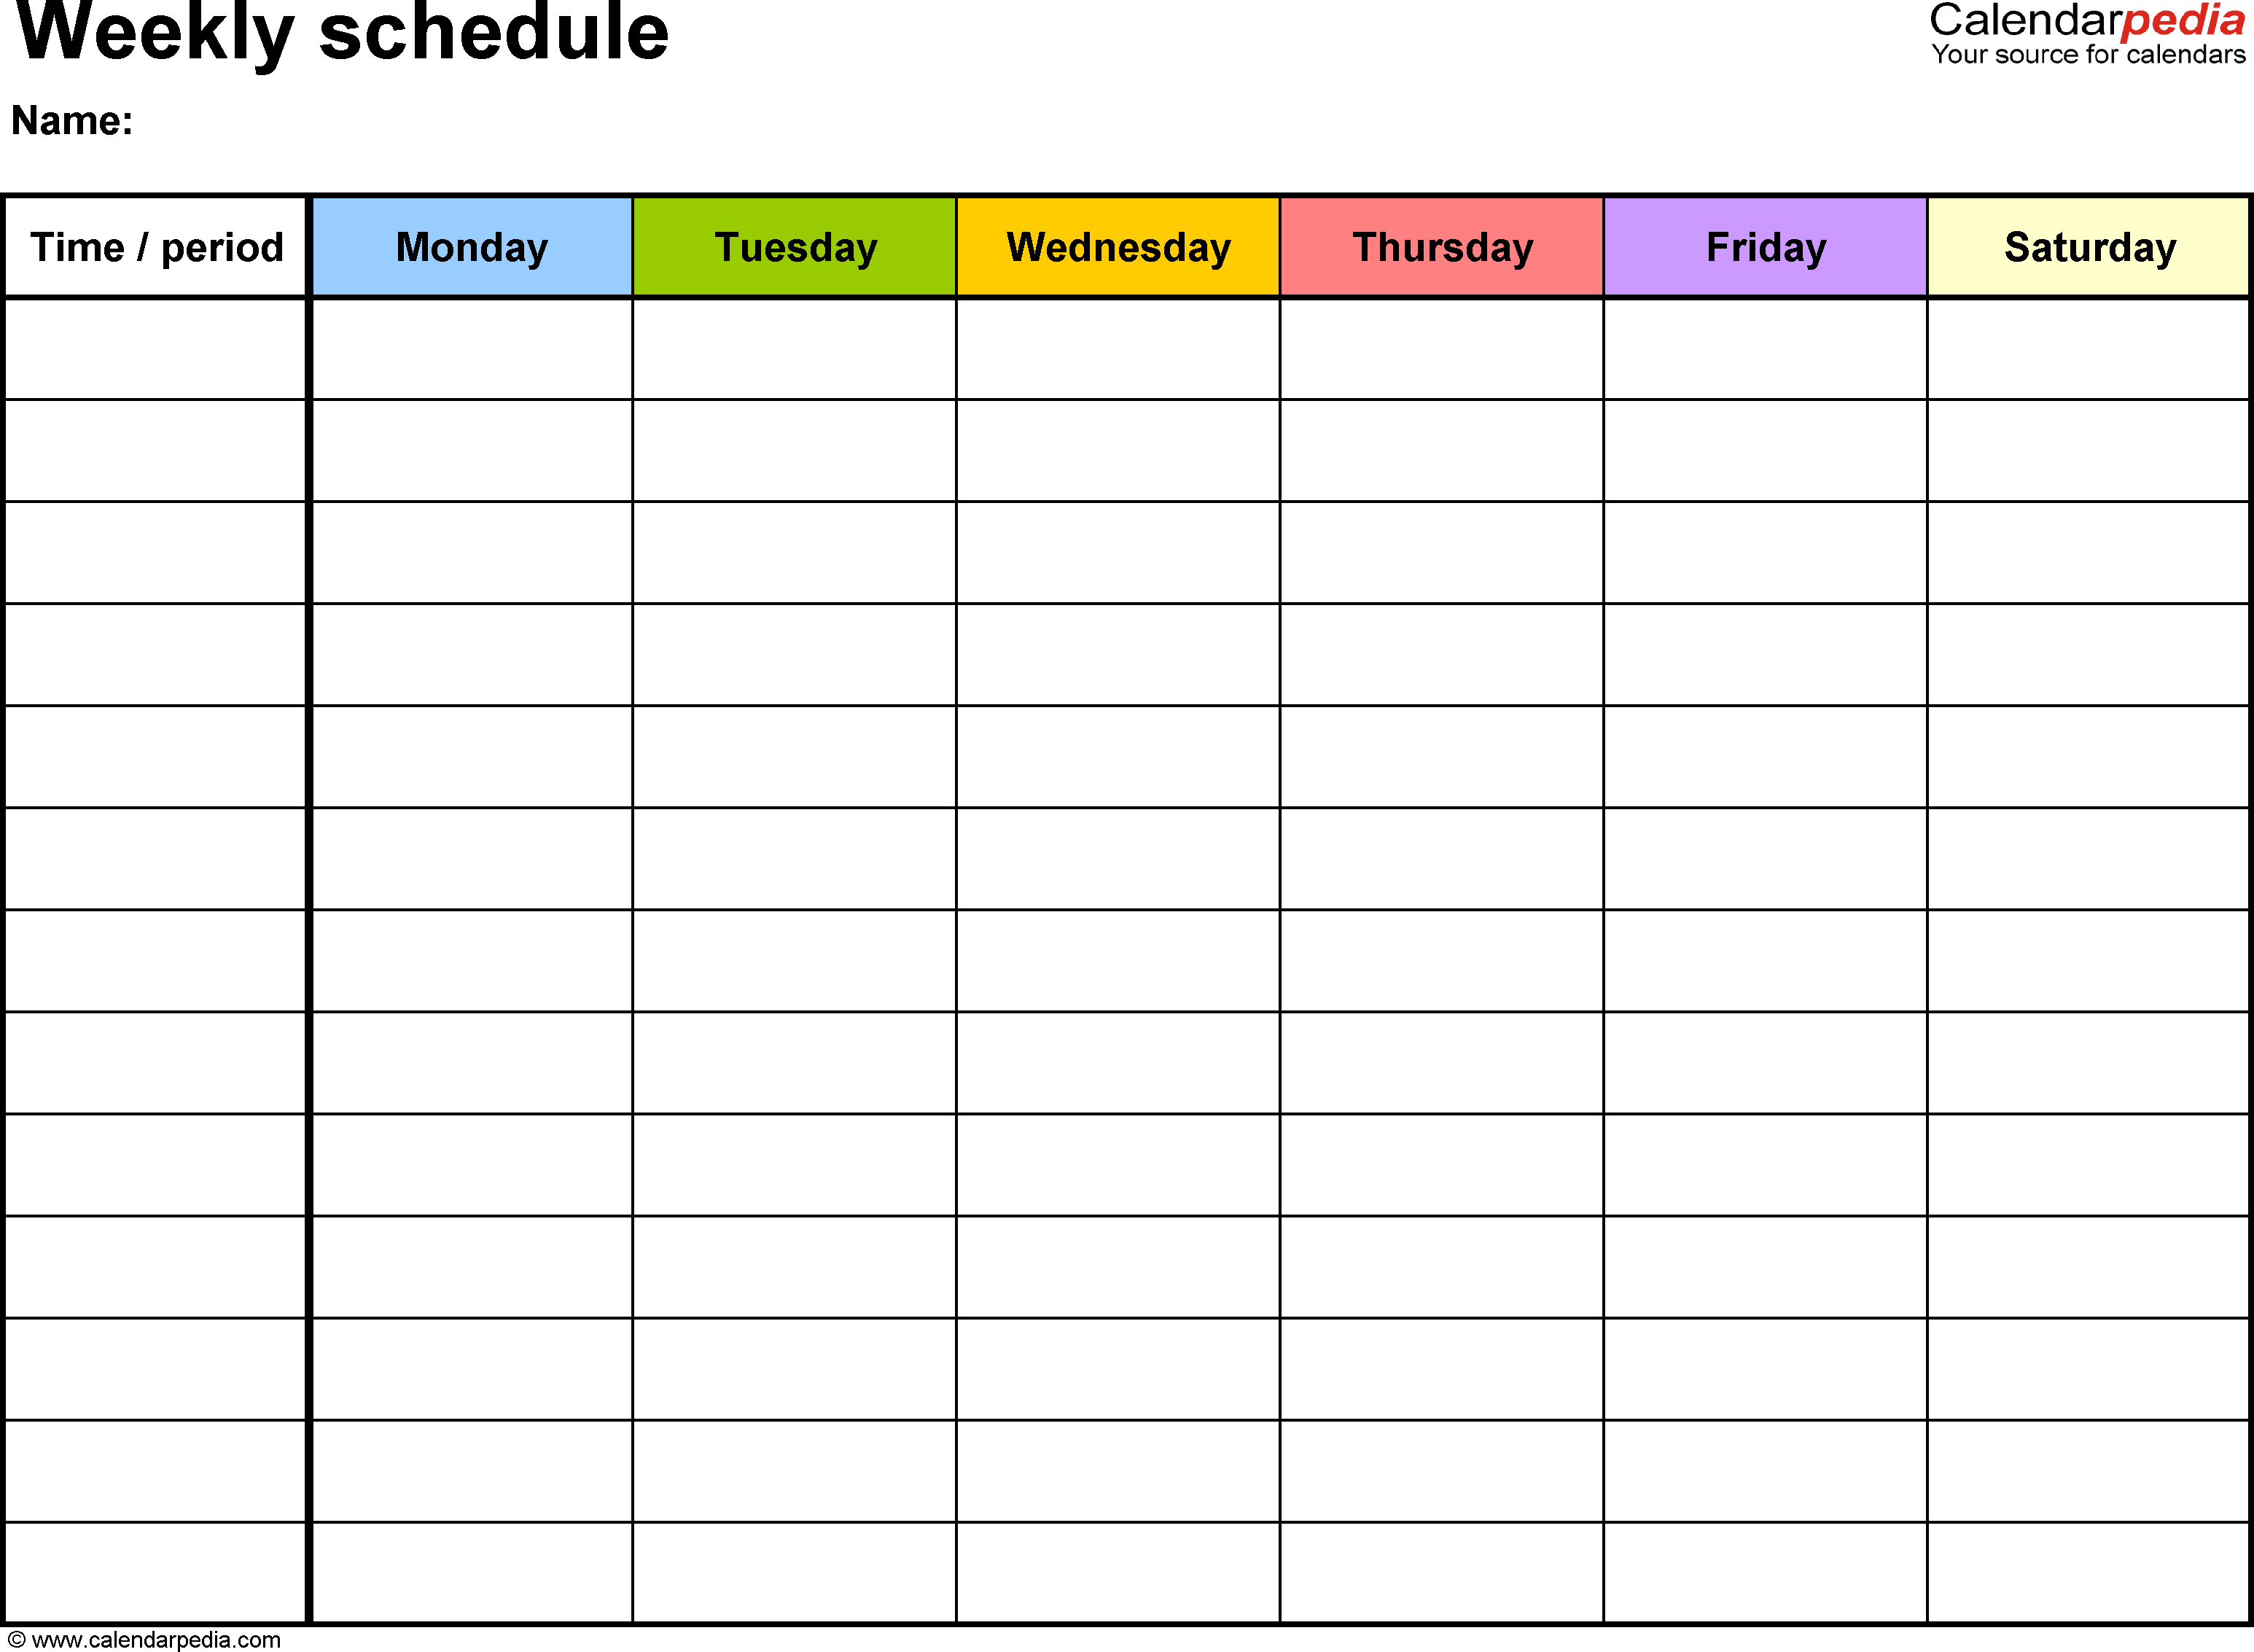 Free Weekly Schedule Templates For Word - 18 Templates with Printable Blank 12 Week Calendar Template